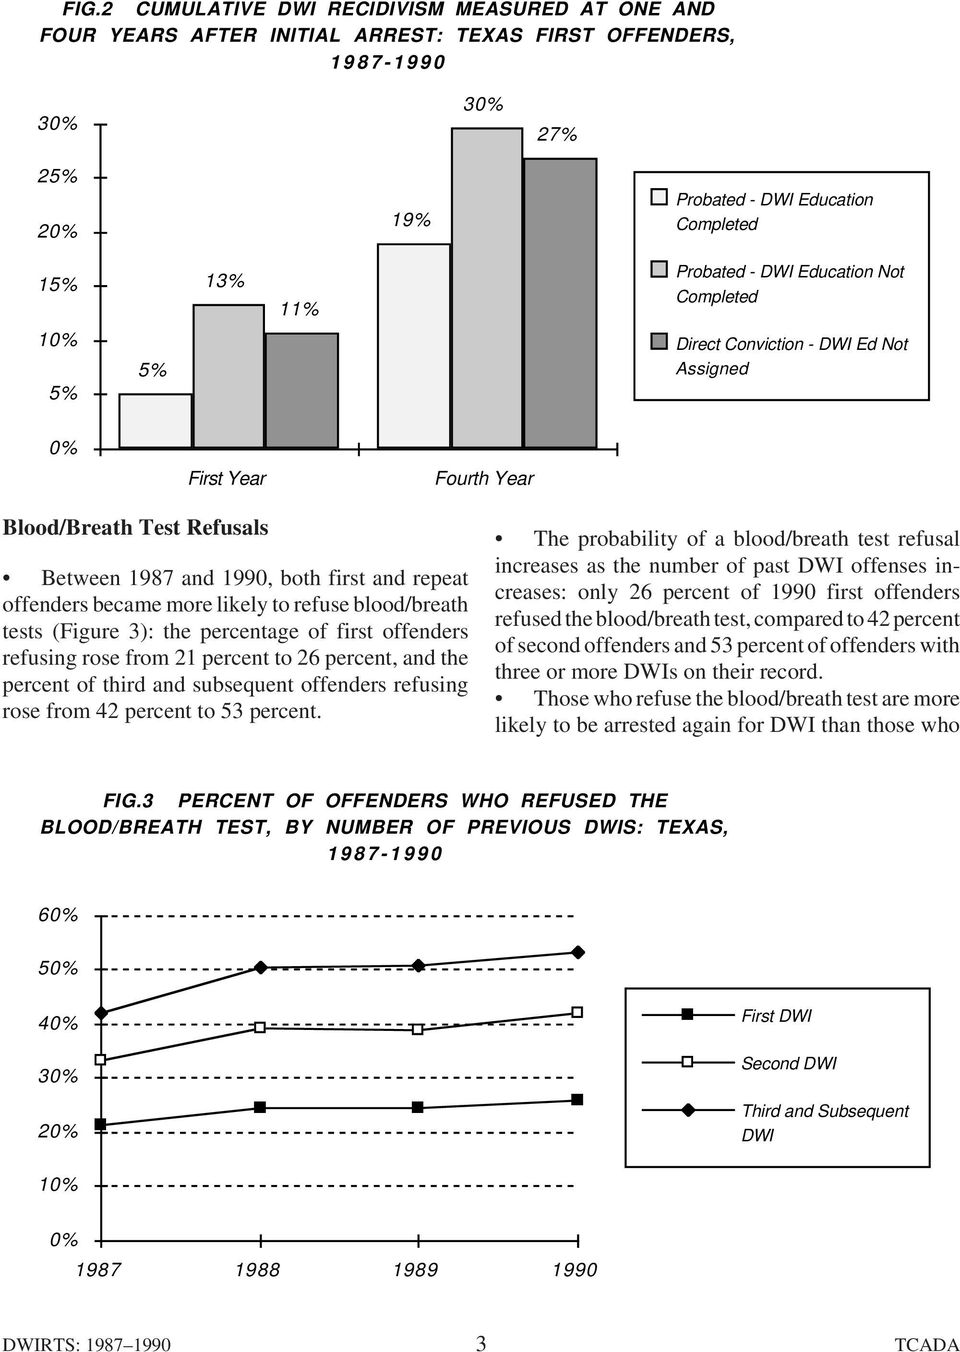 likely to refuse blood/breath tests (Figure 3): the percentage of first offenders refusing rose from 21 percent to 26 percent, and the percent of third and subsequent offenders refusing rose from 42